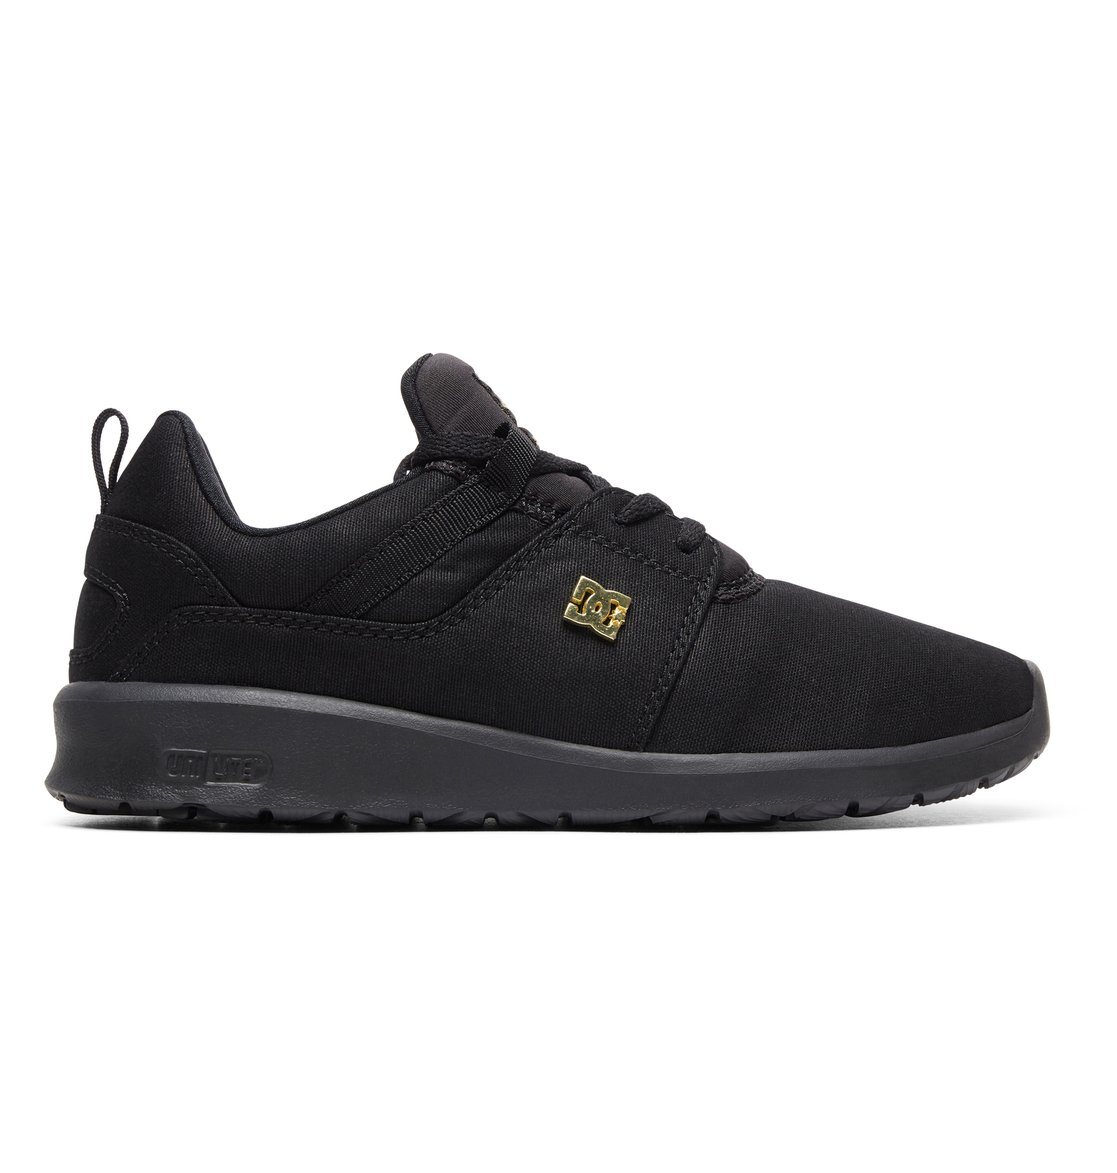 DC Shoes Schuhe »Heathrow TX SE«, schwarz, Black/black